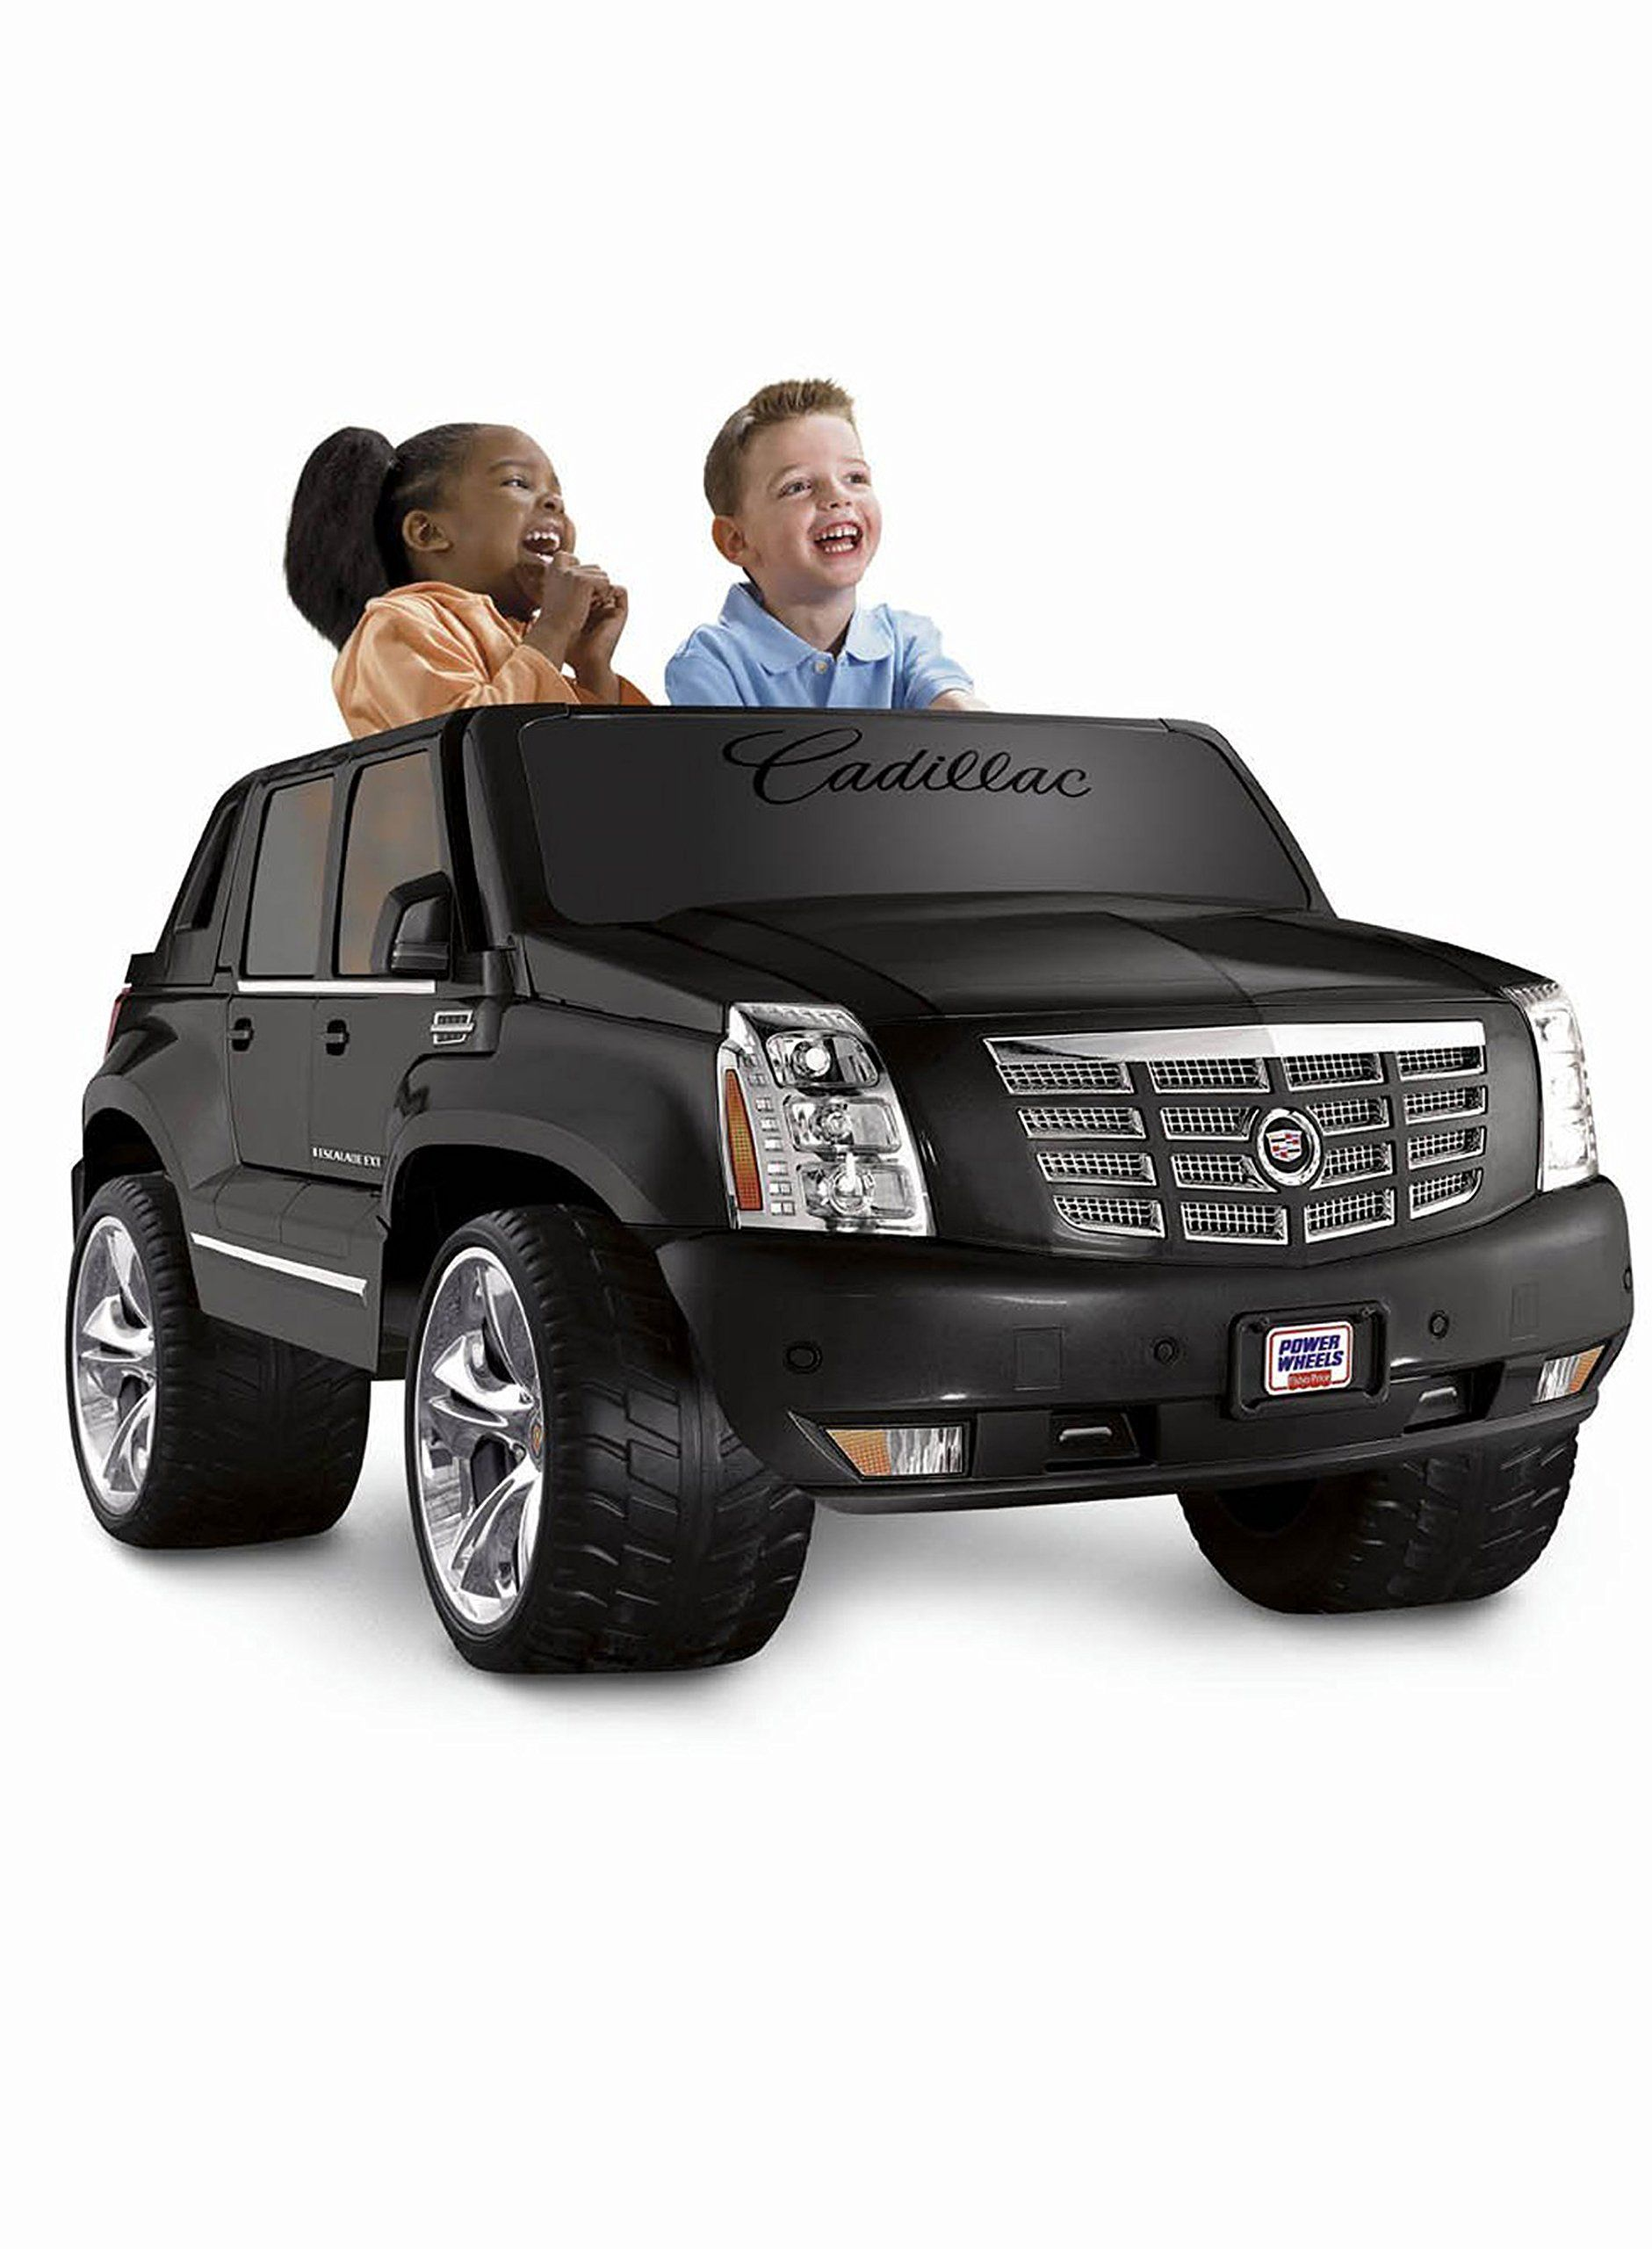 Fisher Price Power Wheels Cadillac Escalade #Powerwheels Read This Review Before